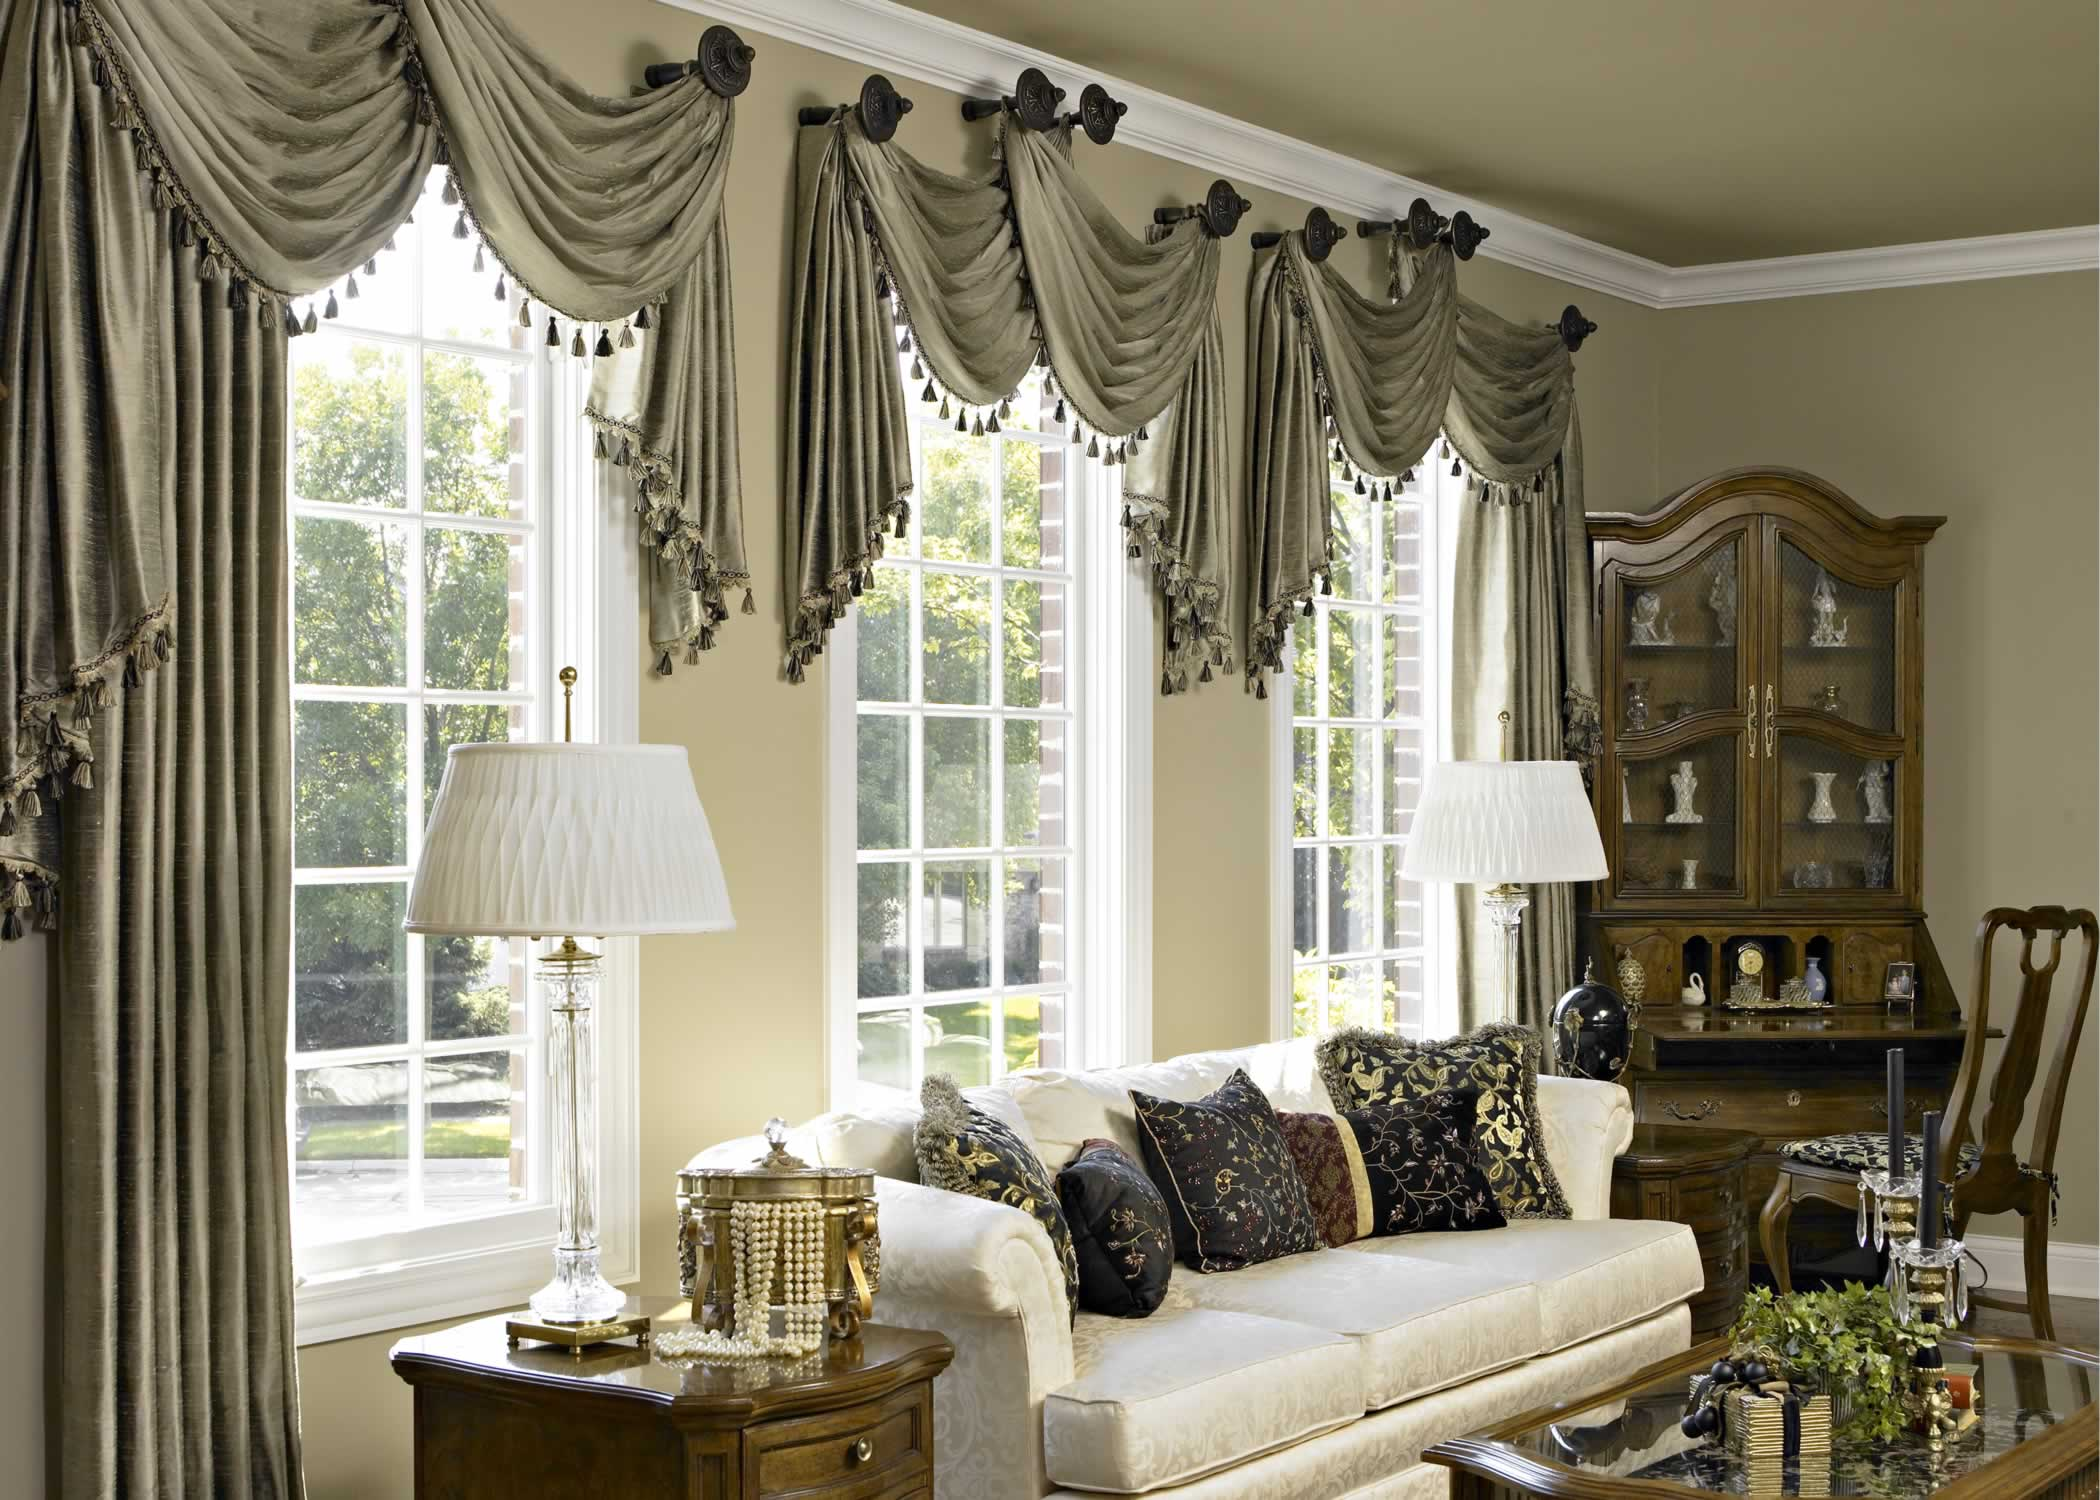 Luxury Living Room With Window Treatment Ideas